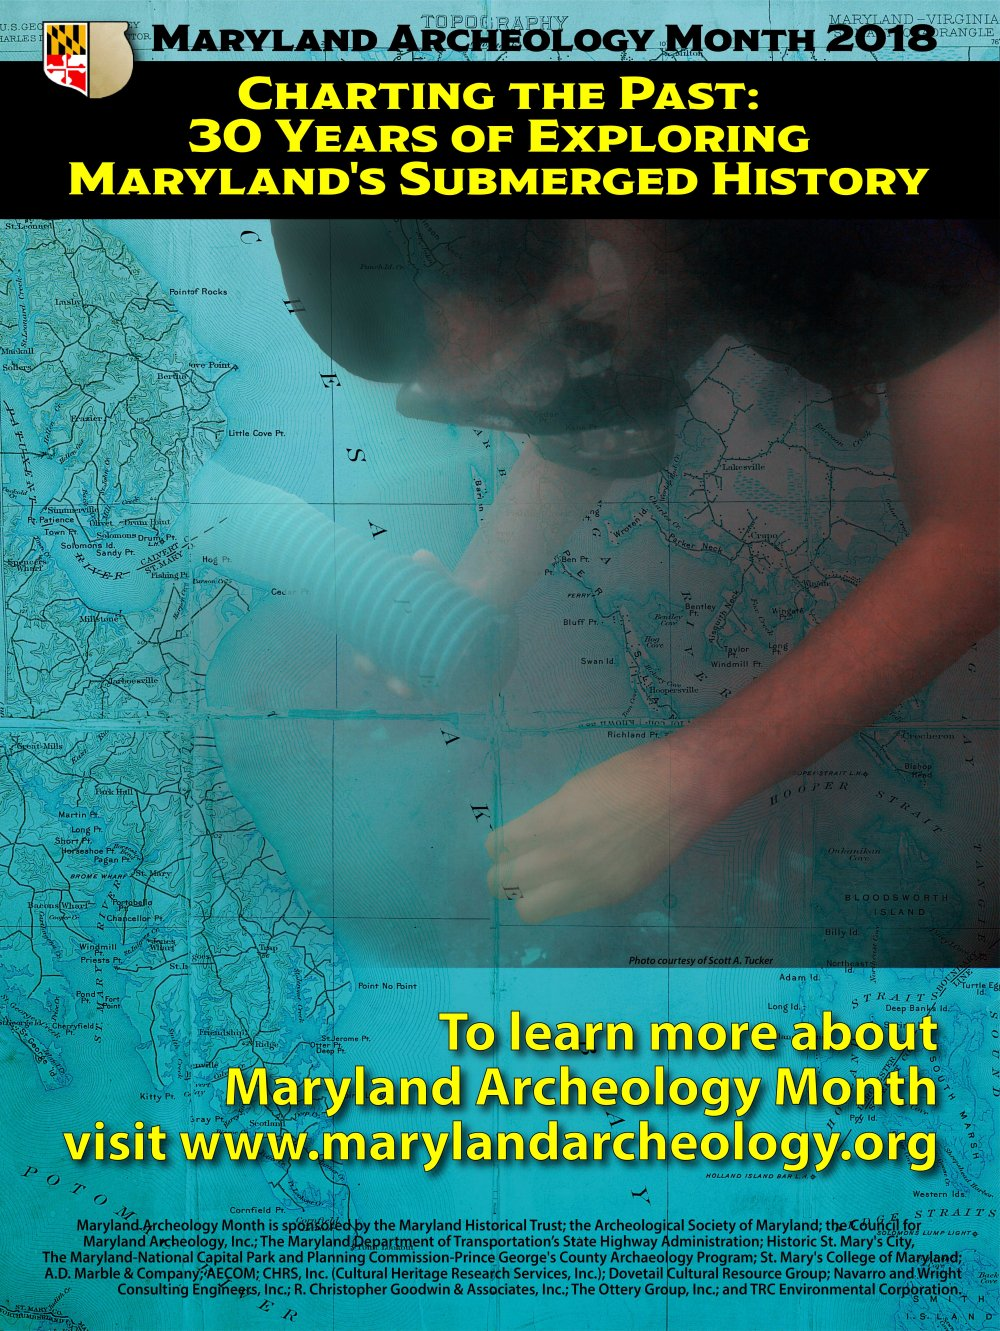 2018 Maryland Archeology Month Poster